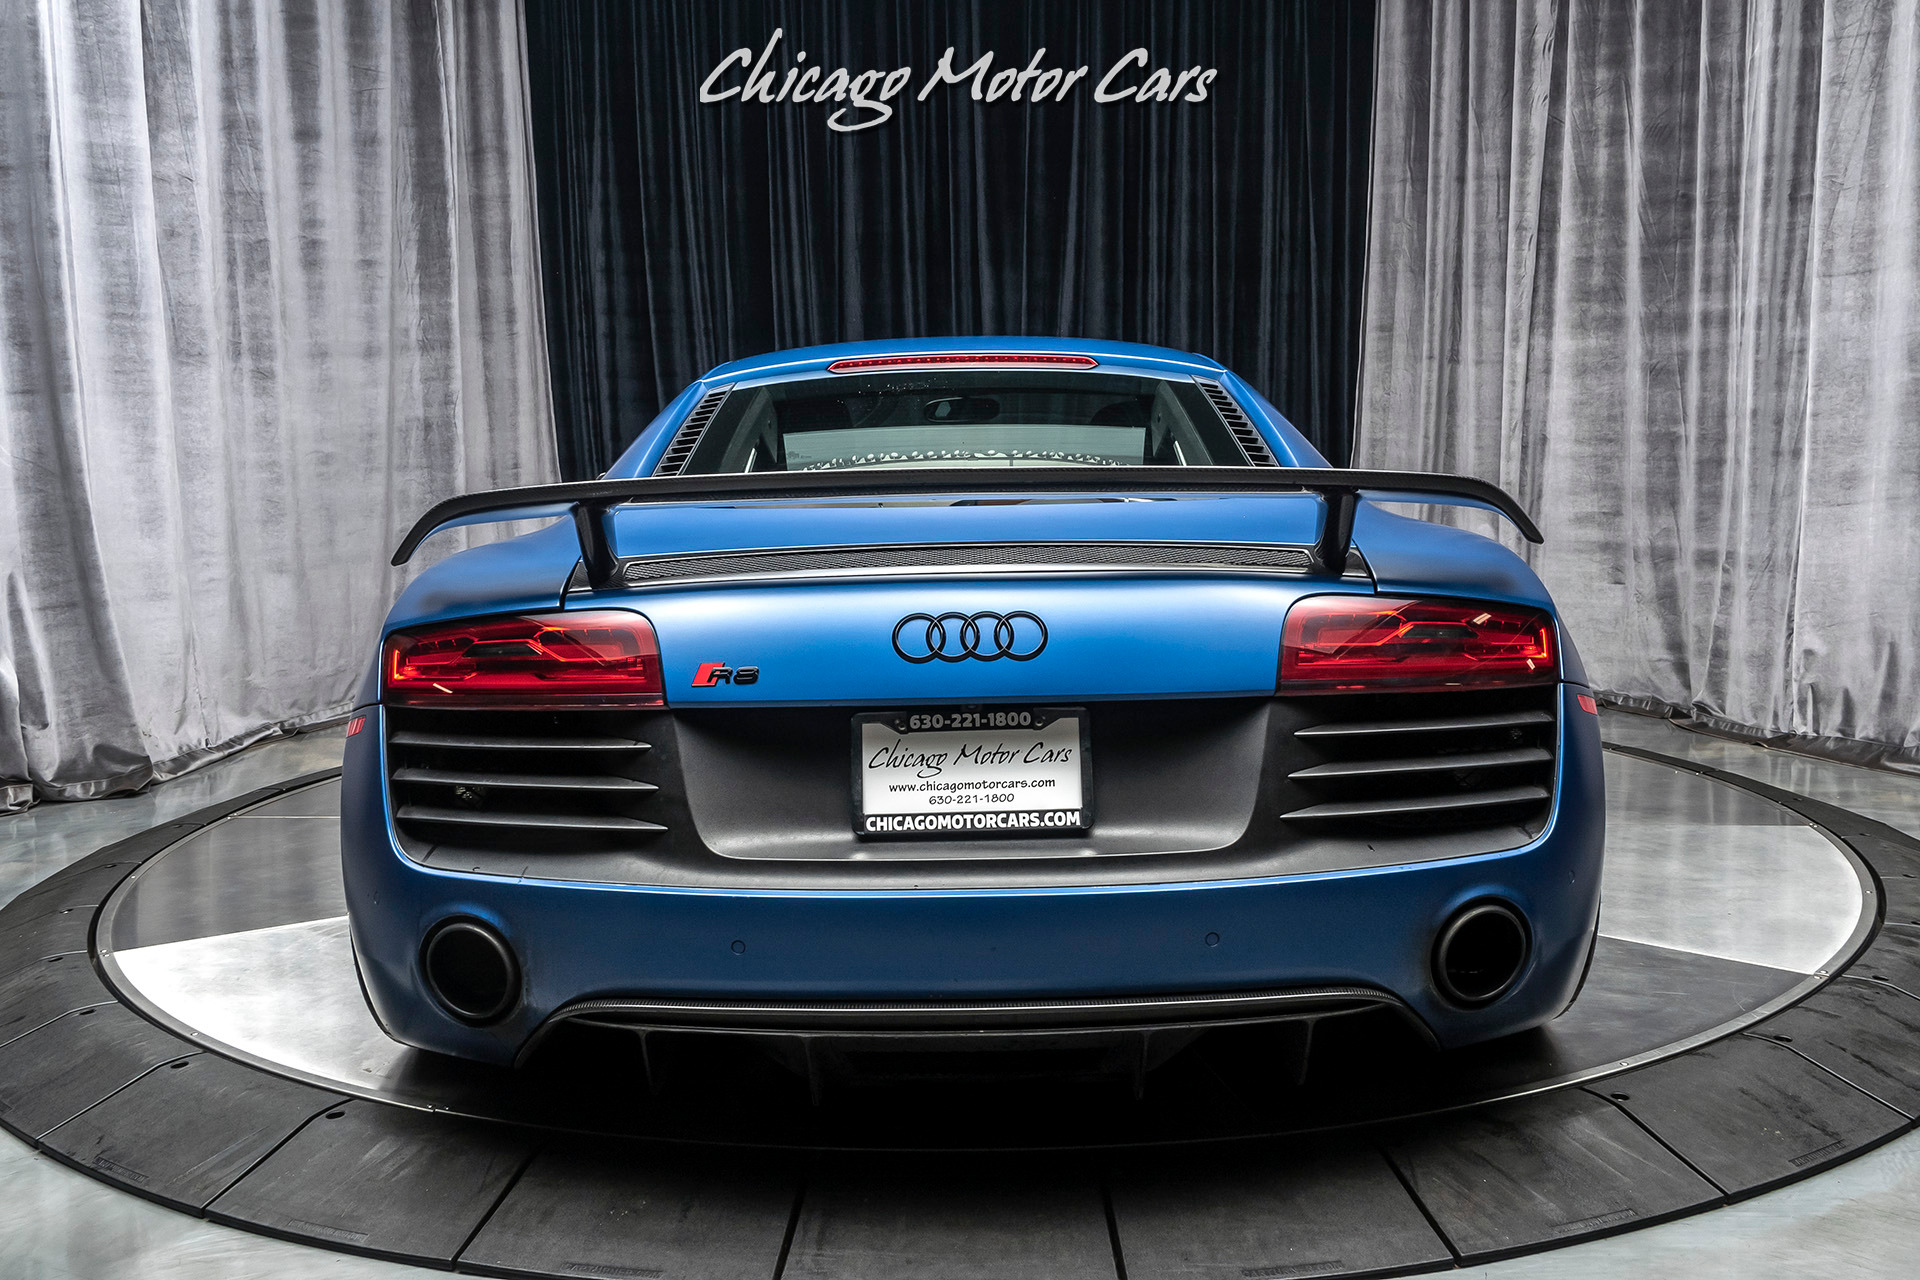 Used-2014-Audi-R8-V10-Plus-quattro-S-tronic-Coupe-1250-HP-AMS-TWIN-TURBO-BUILT